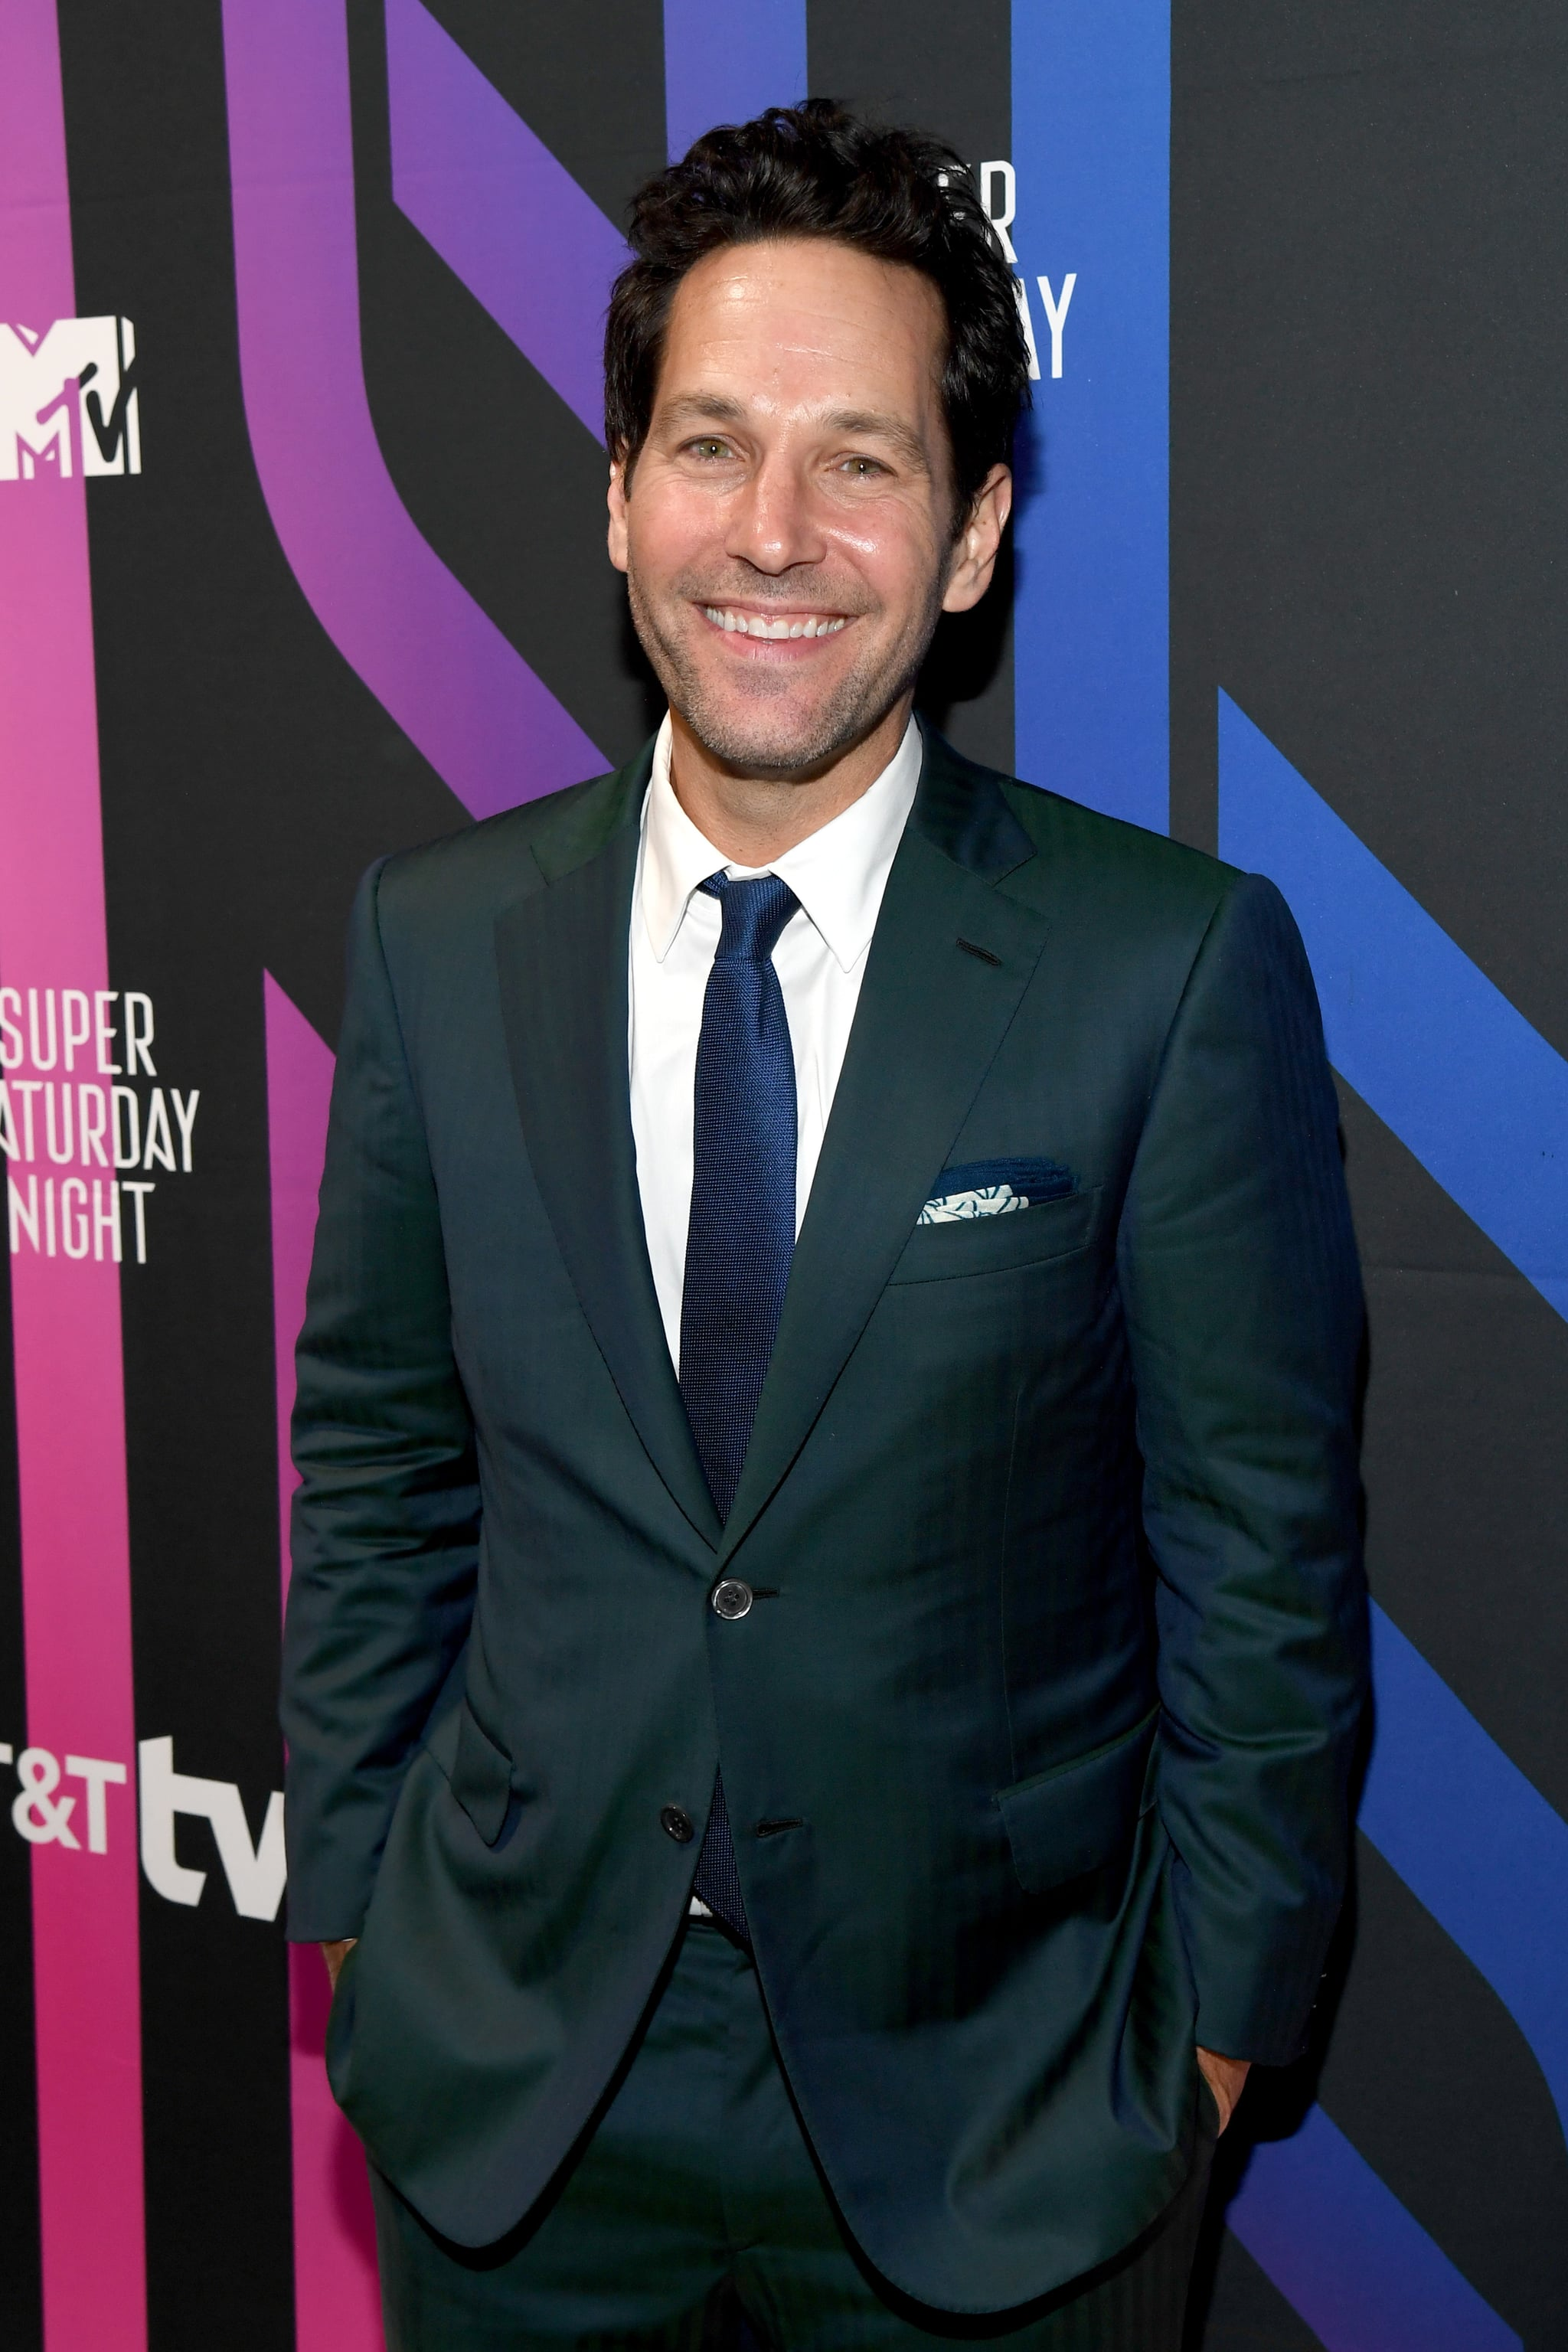 MIAMI, FLORIDA - FEBRUARY 01: Paul Rudd attends AT&T TV Super Saturday Night at Meridian at Island Gardens on February 01, 2020 in Miami, Florida. (Photo by Kevin Mazur/Getty Images for AT&T )